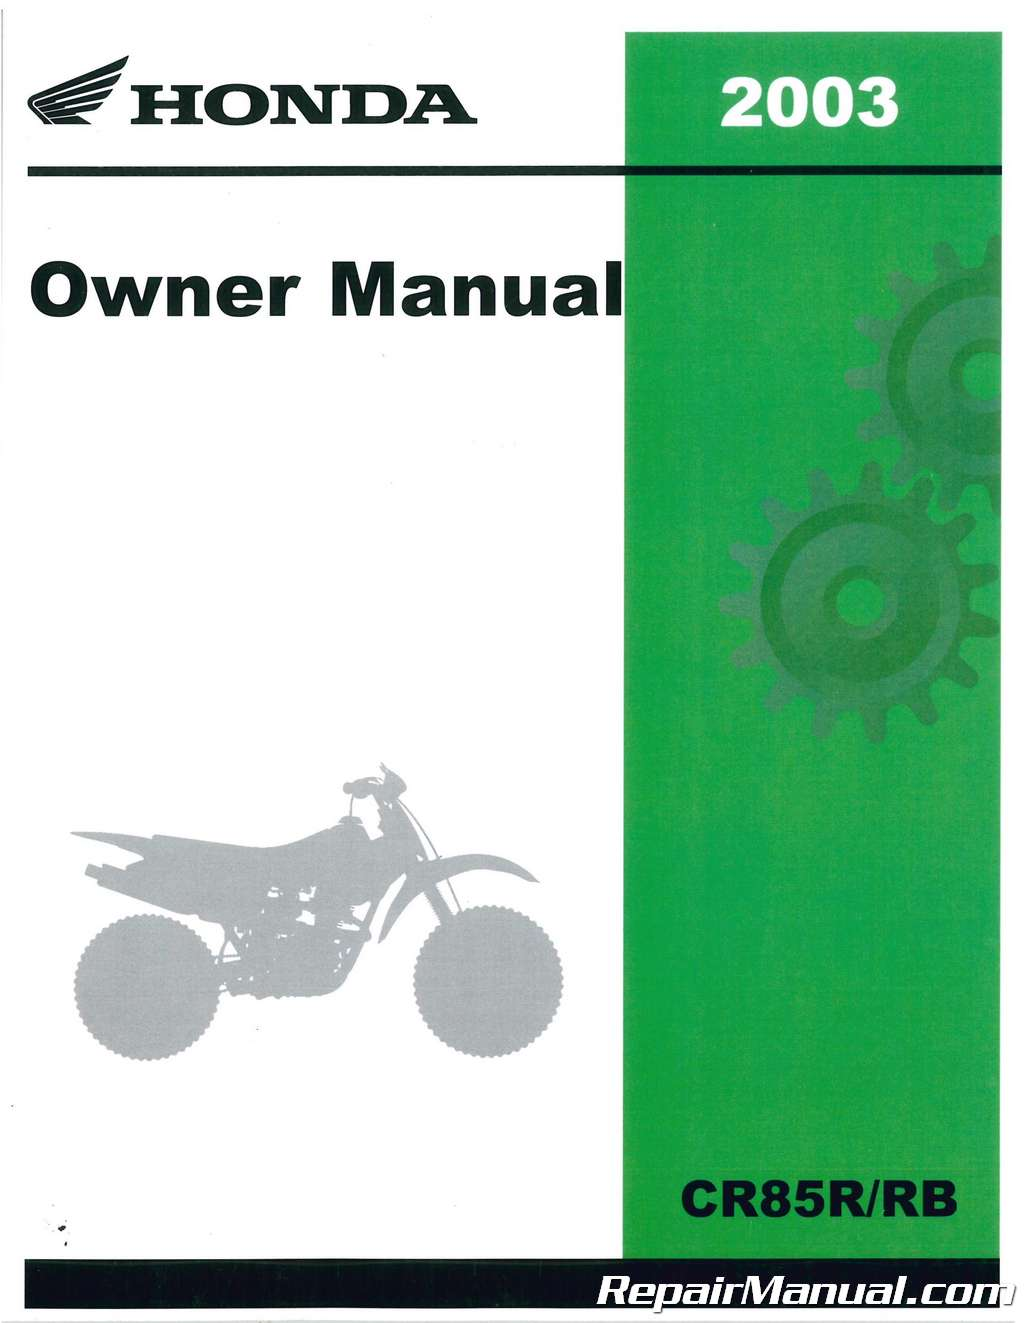 2003-Honda-CR85R-CR85RB-Motorcycle-Owners-Manual-Competition- ...